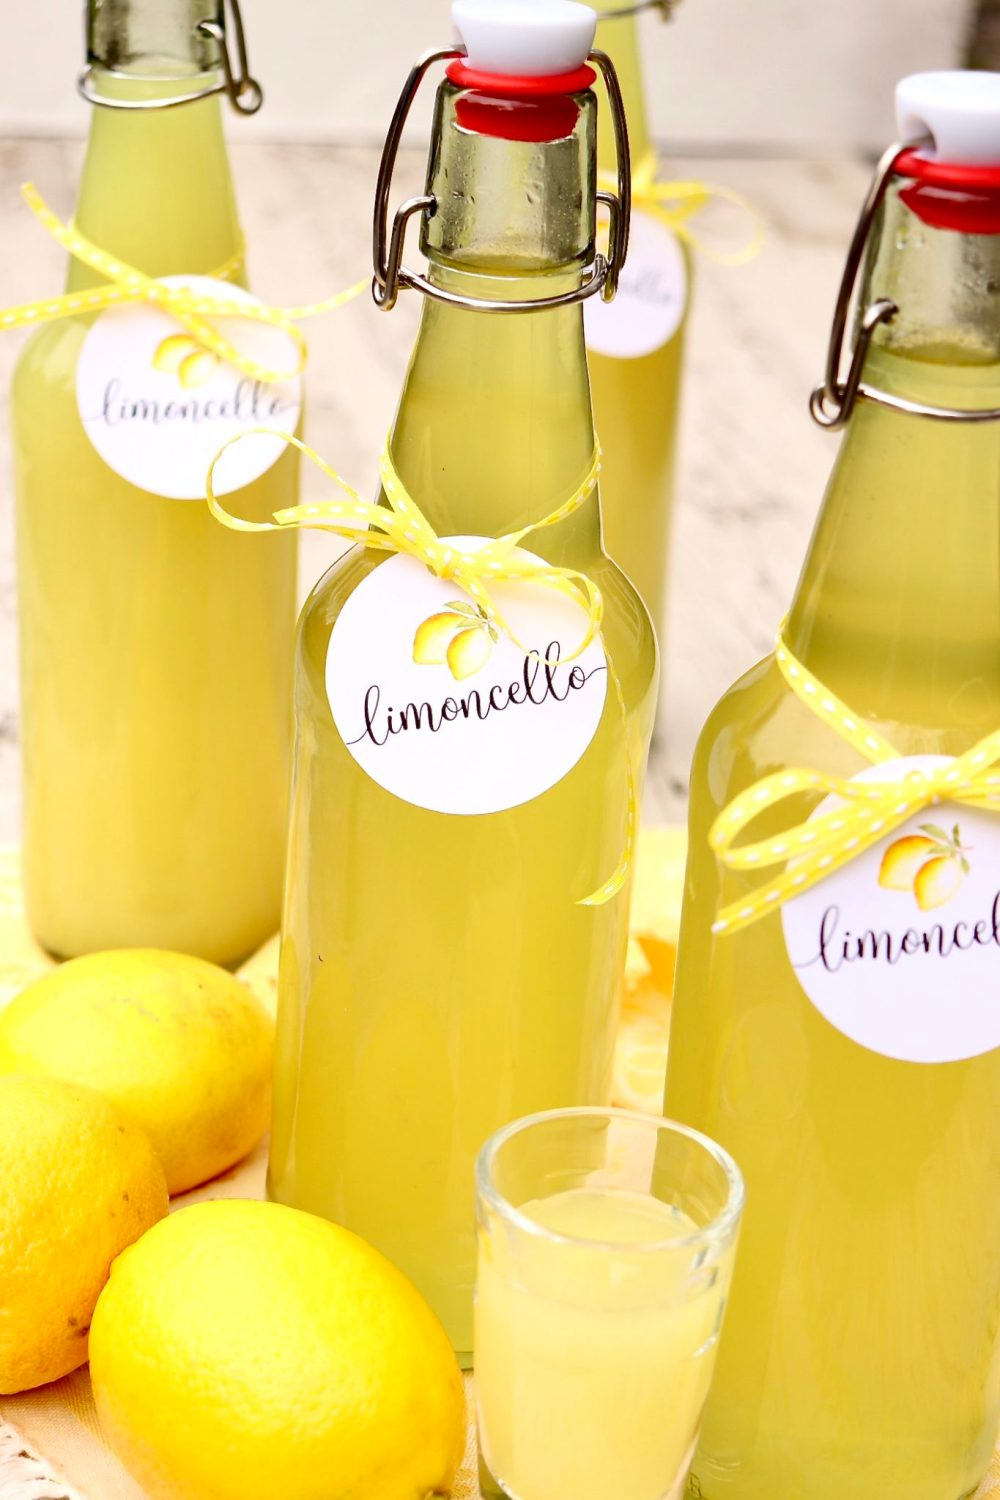 Bring the Amalfi Coast to you with this easy-to-make Italian liqueur. The lightly sweet, lemony flavor is perfect as a mixer or an after-dinner drink and makes a festive holiday or hostess gift.